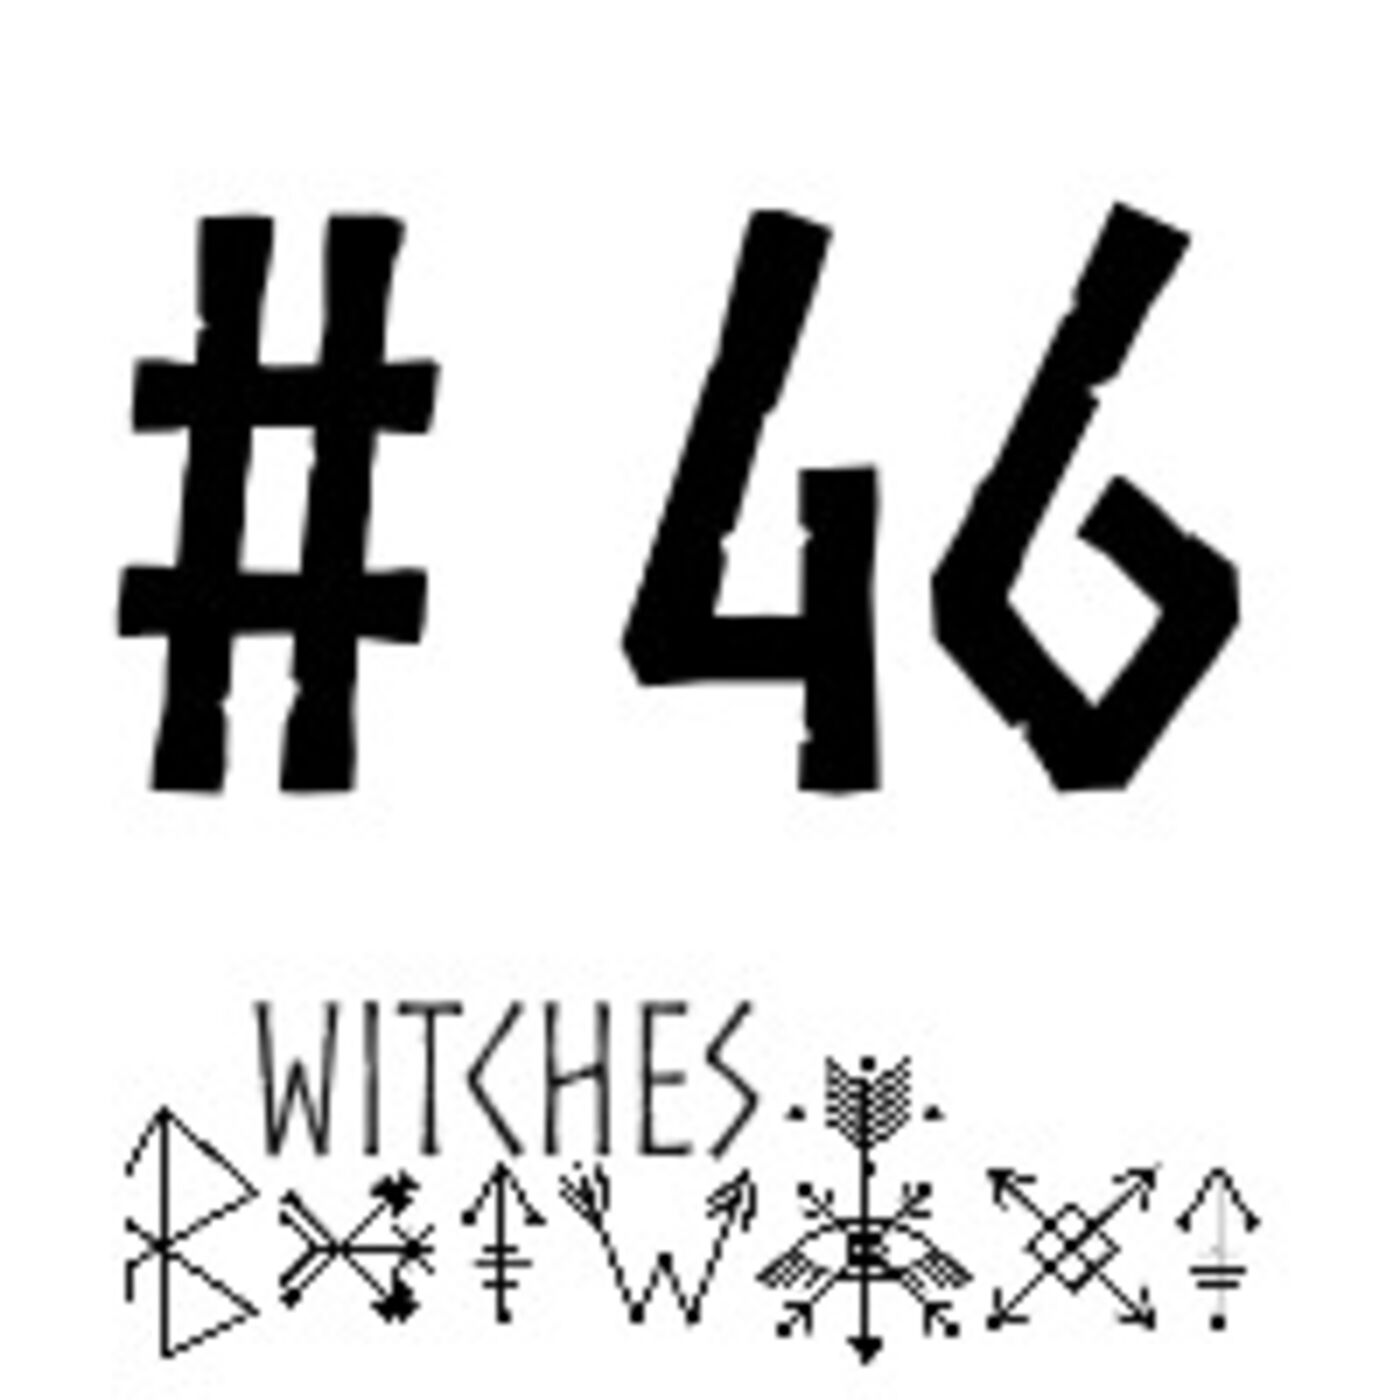 WBTWXT EP #46 - What Makes A Witch? - An Interview with Linnea B Capps, a queer author